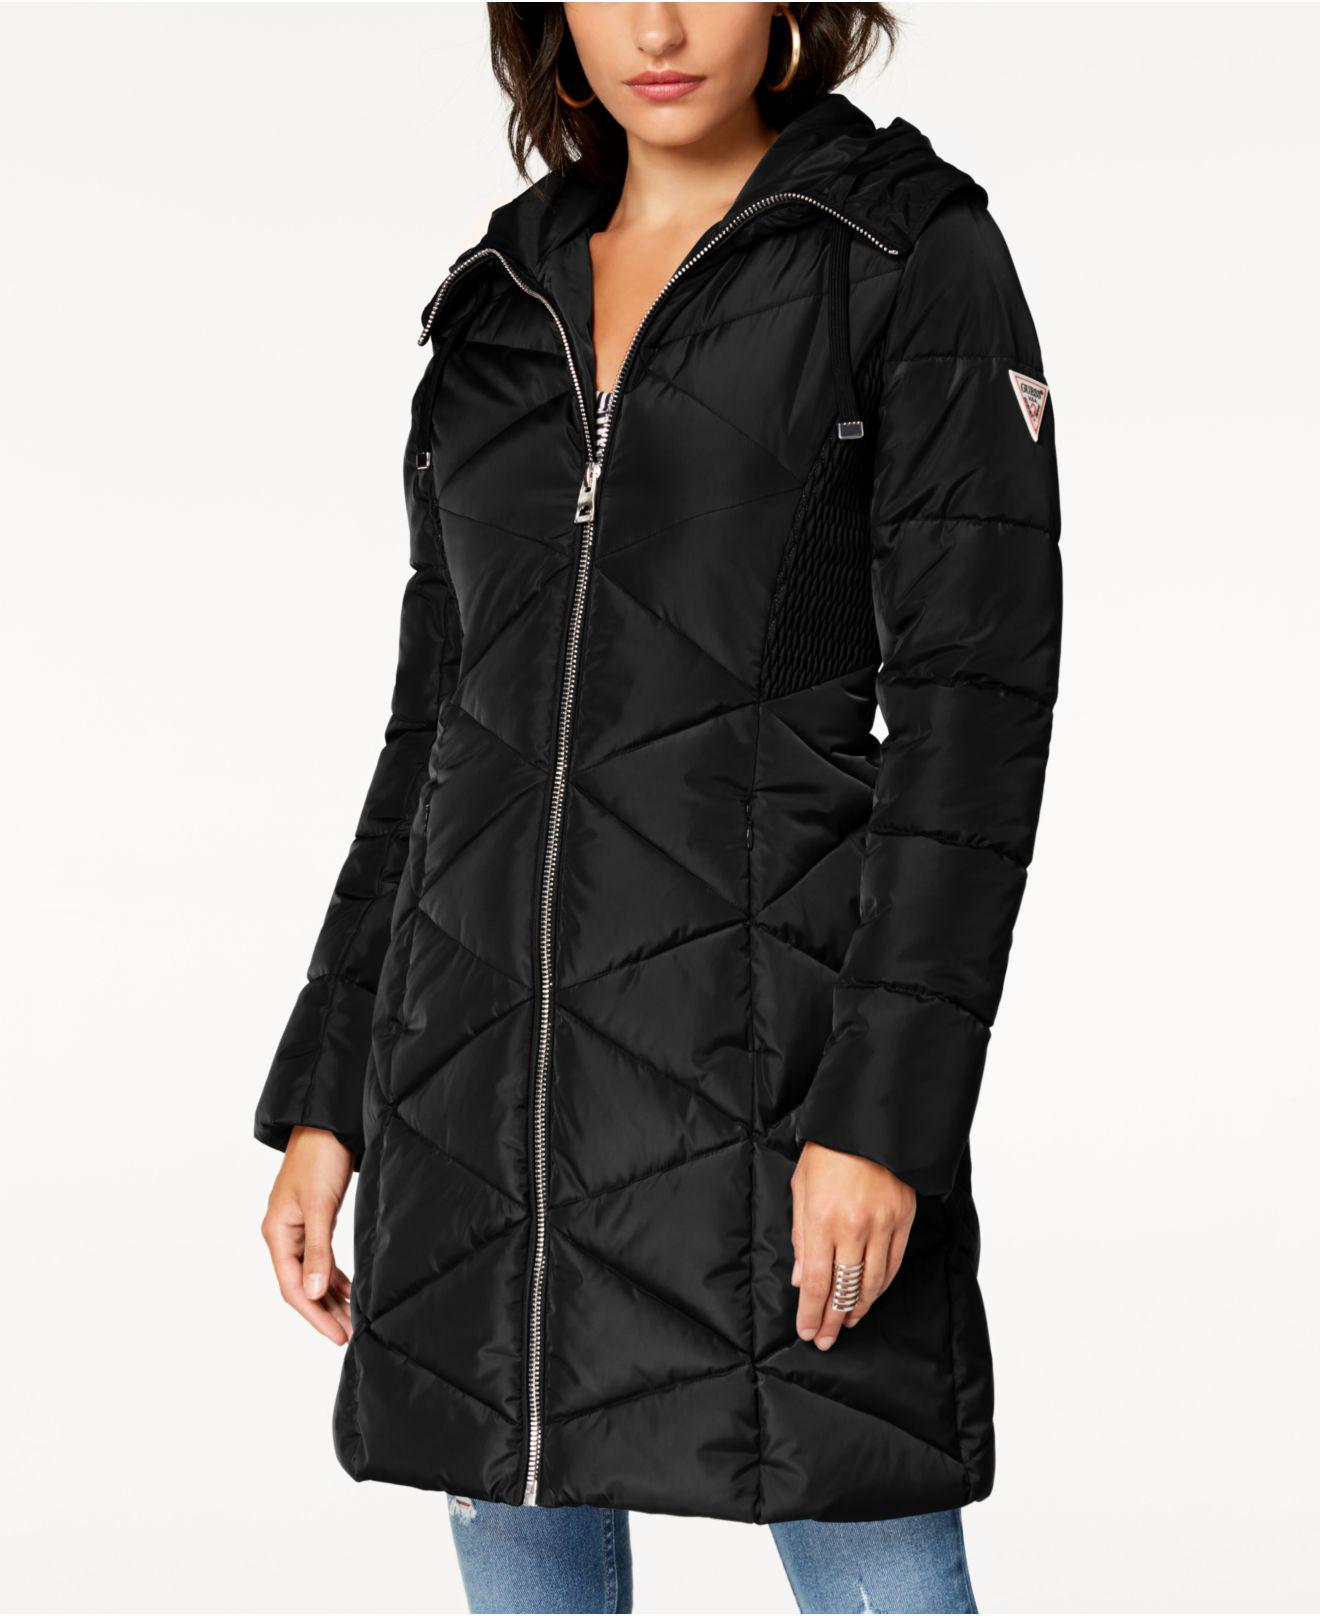 Guess Faux Fur Trim Diamond Quilted Puffer Coat In Black